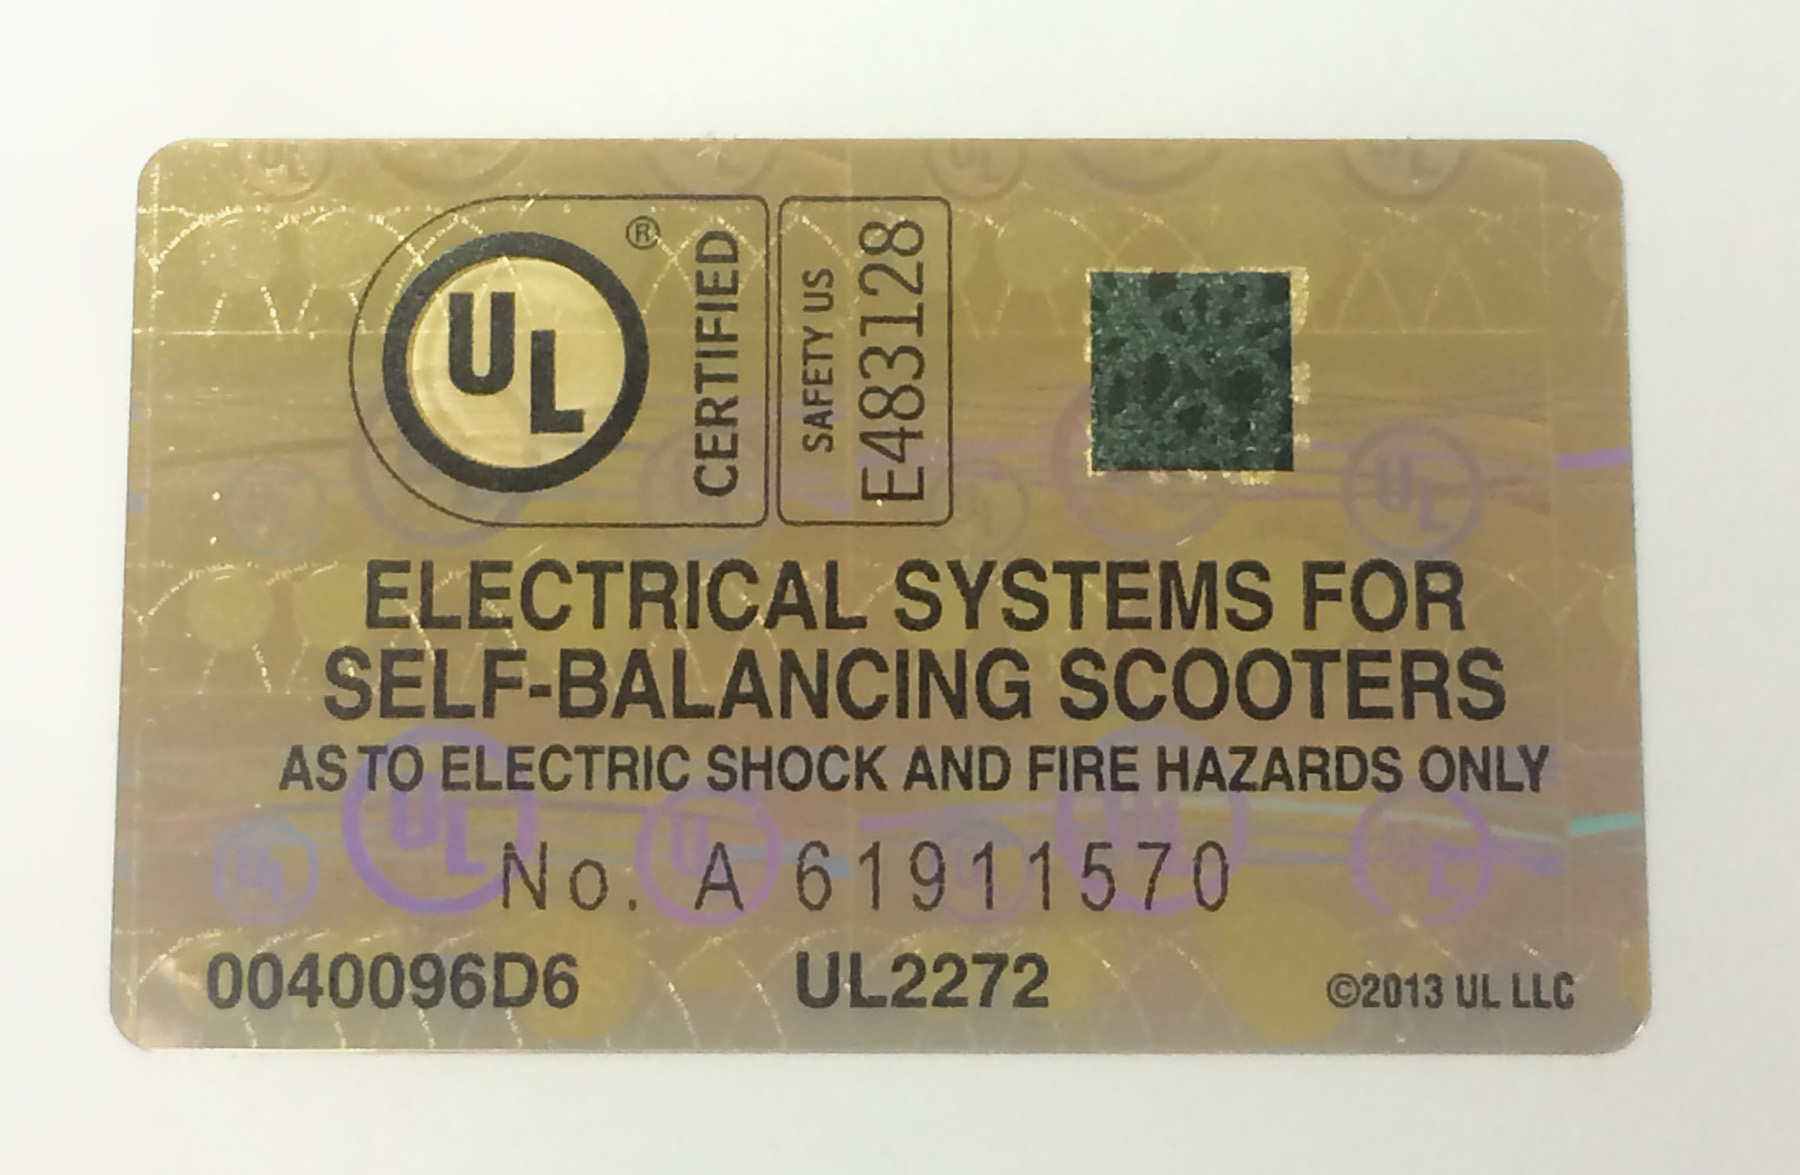 UL Hoverboard Label Image